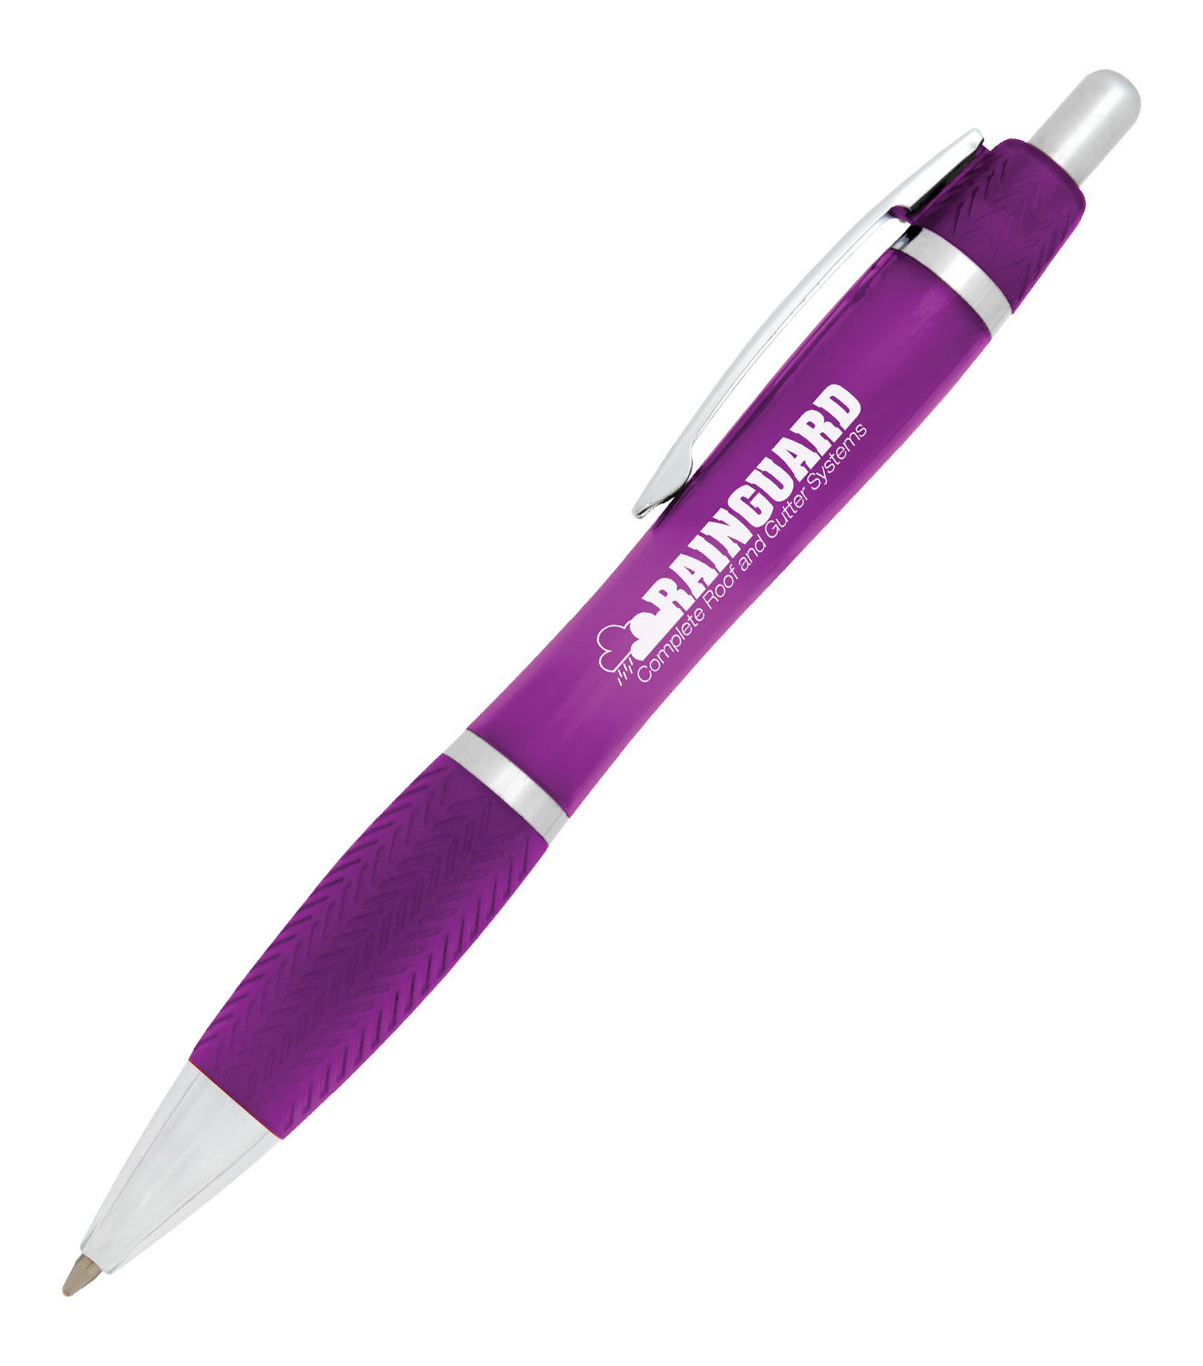 Translucent Chrome-Barrel Ballpoint Pen, Medium Point, Assorted Barrel Colors, Black Ink